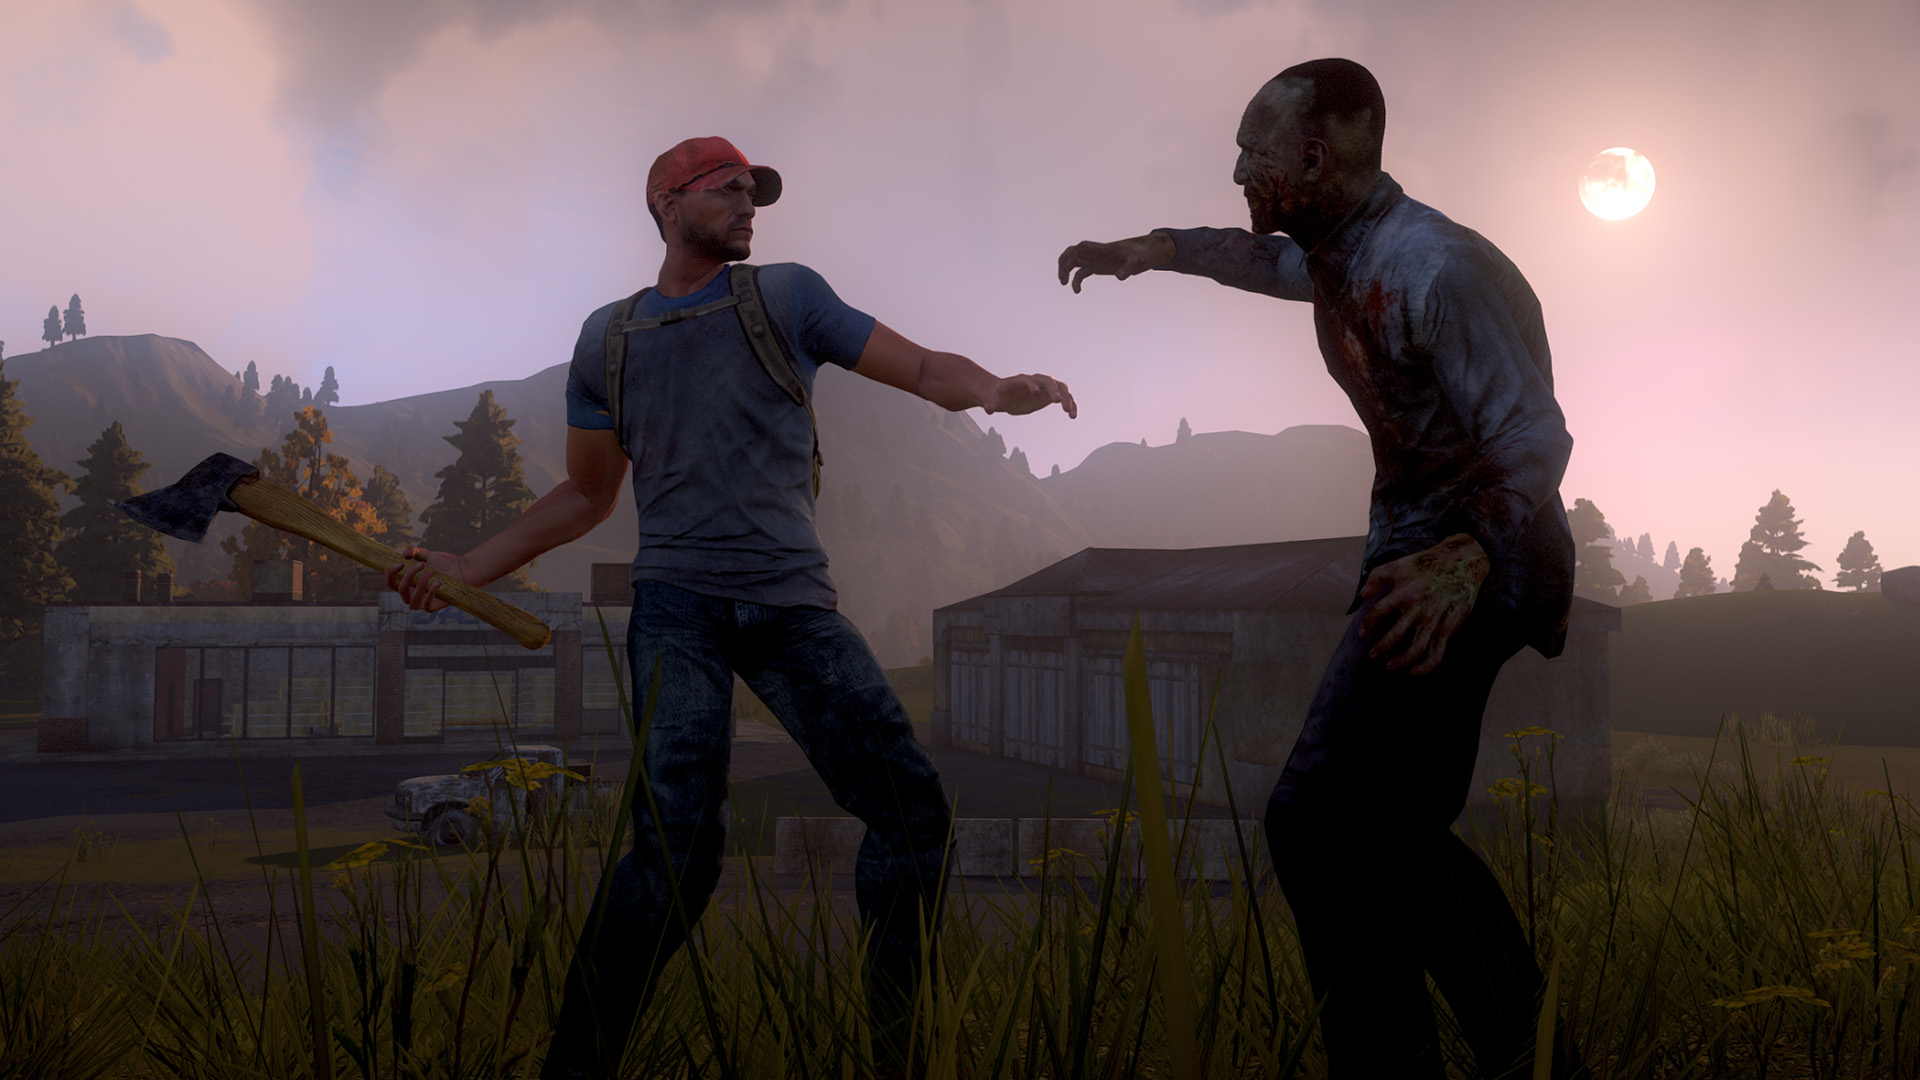 h1z1 can teach us